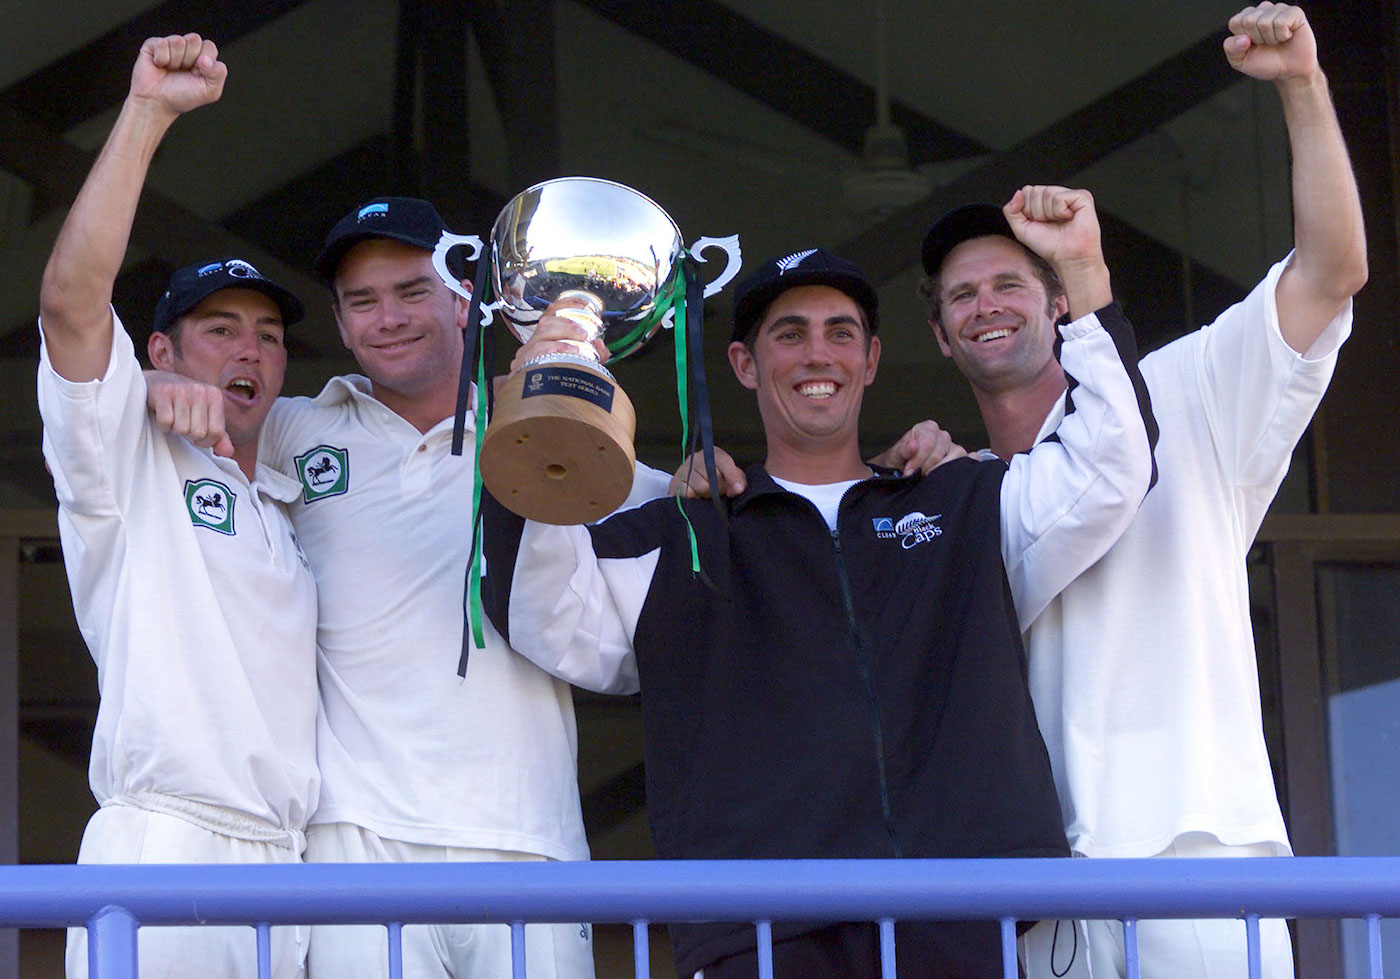 Matt Sinclair (second from right) made 214 on debut against West Indies in Wellington in 1999-2000 - still the highest score by a New Zealand Test debutant